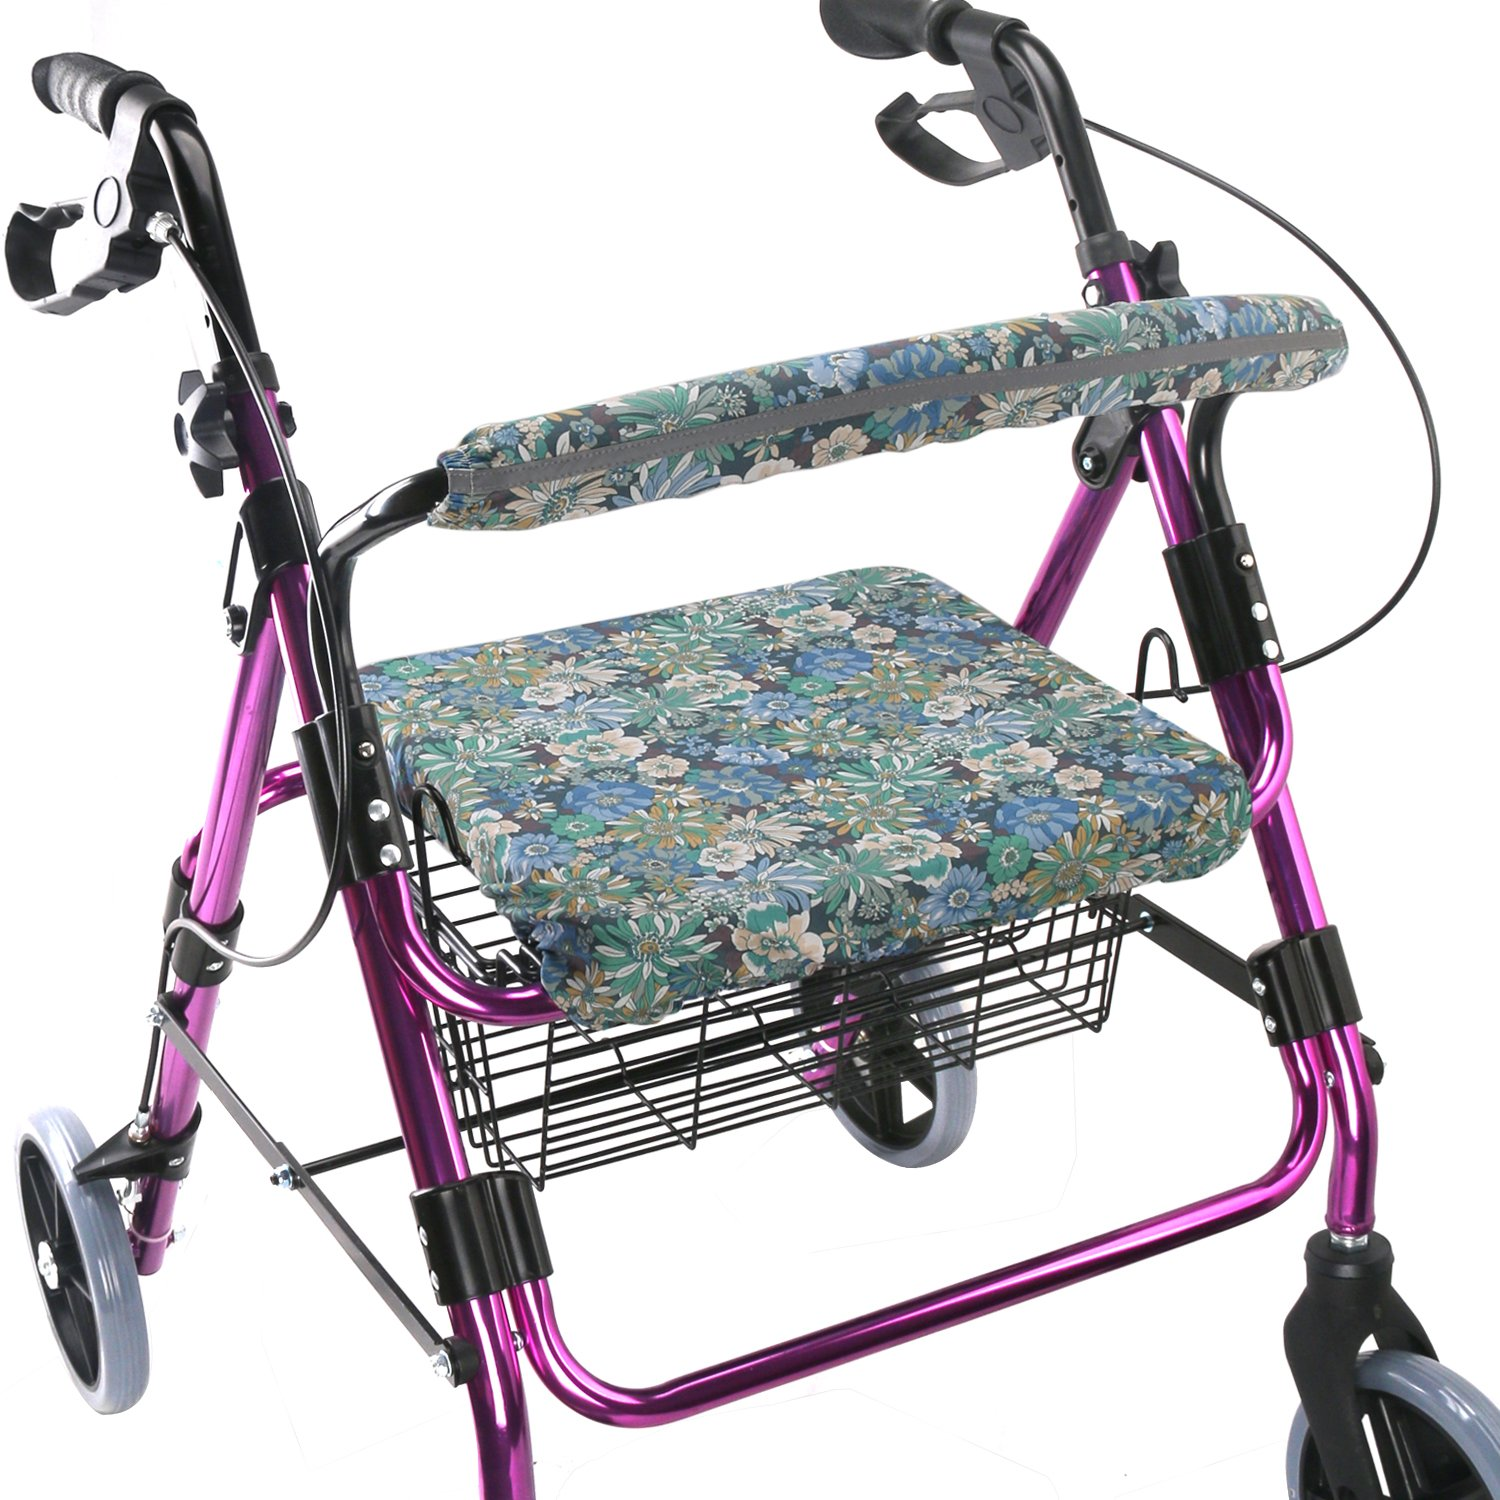 Walker Seat Cover Rollator Walker Seat and Backrest Covers Vibrant Walker Cover One Size Multiple Colors (CB1887)